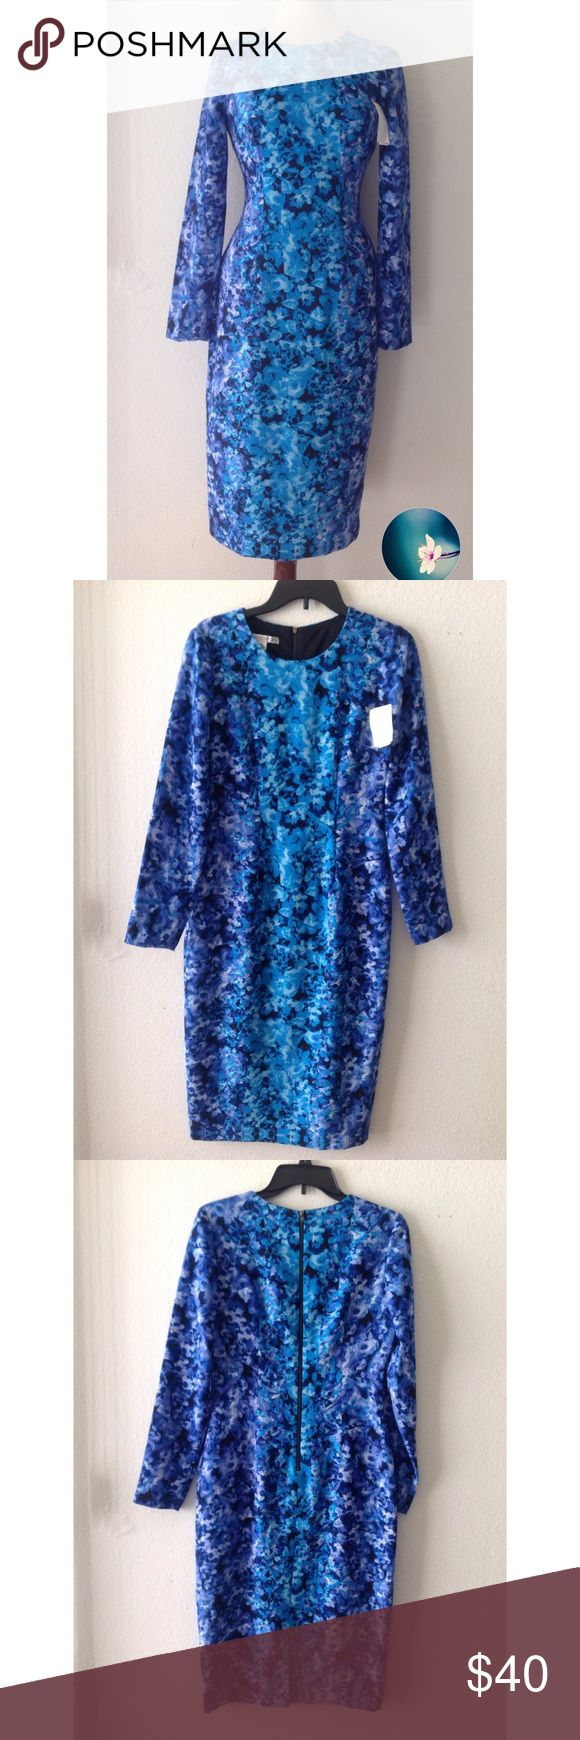 """Maggy London floral sheath midi dress Long sleeve in a blue floral print. midi length, exposed back zipper.  Bust: laying flat armpit to armpit 18 inches. Waist laying flat 15 inches. Length: 45 inches....Brand new with """"last chance"""" dept store tags...no flaws. Maggy London Dresses"""